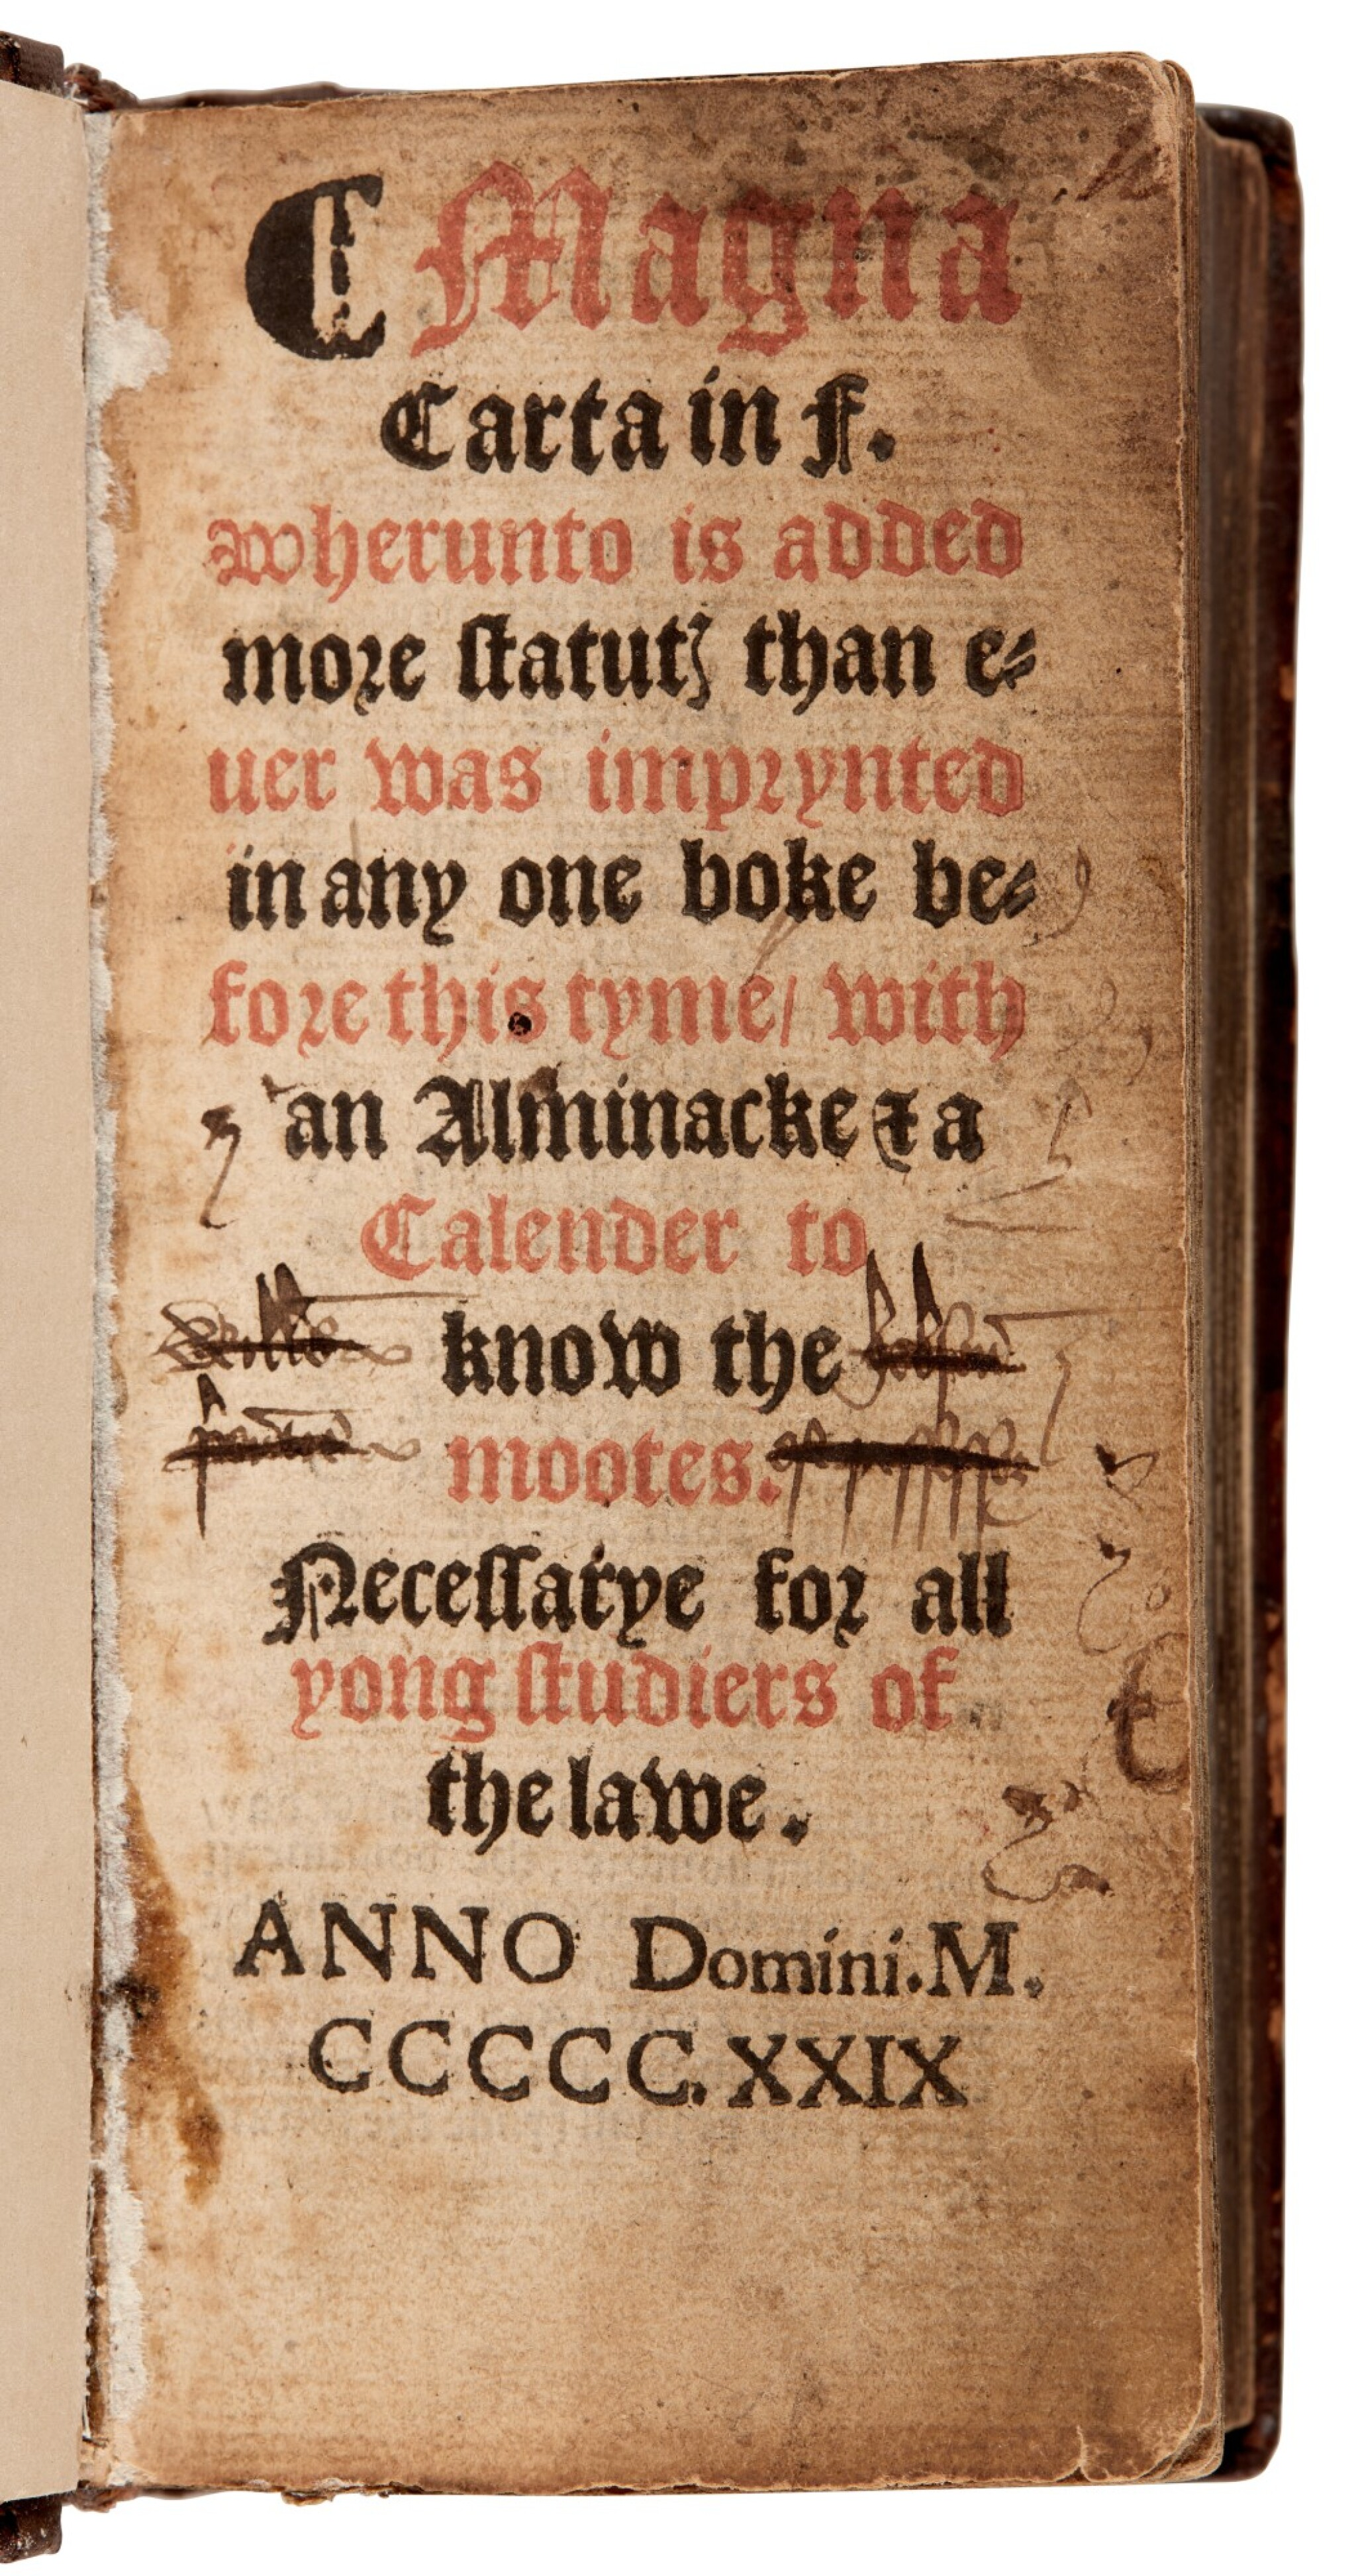 View full screen - View 1 of Lot 111. [England, Laws] Magna Carta in F., London, 1529 [1539], old calf.